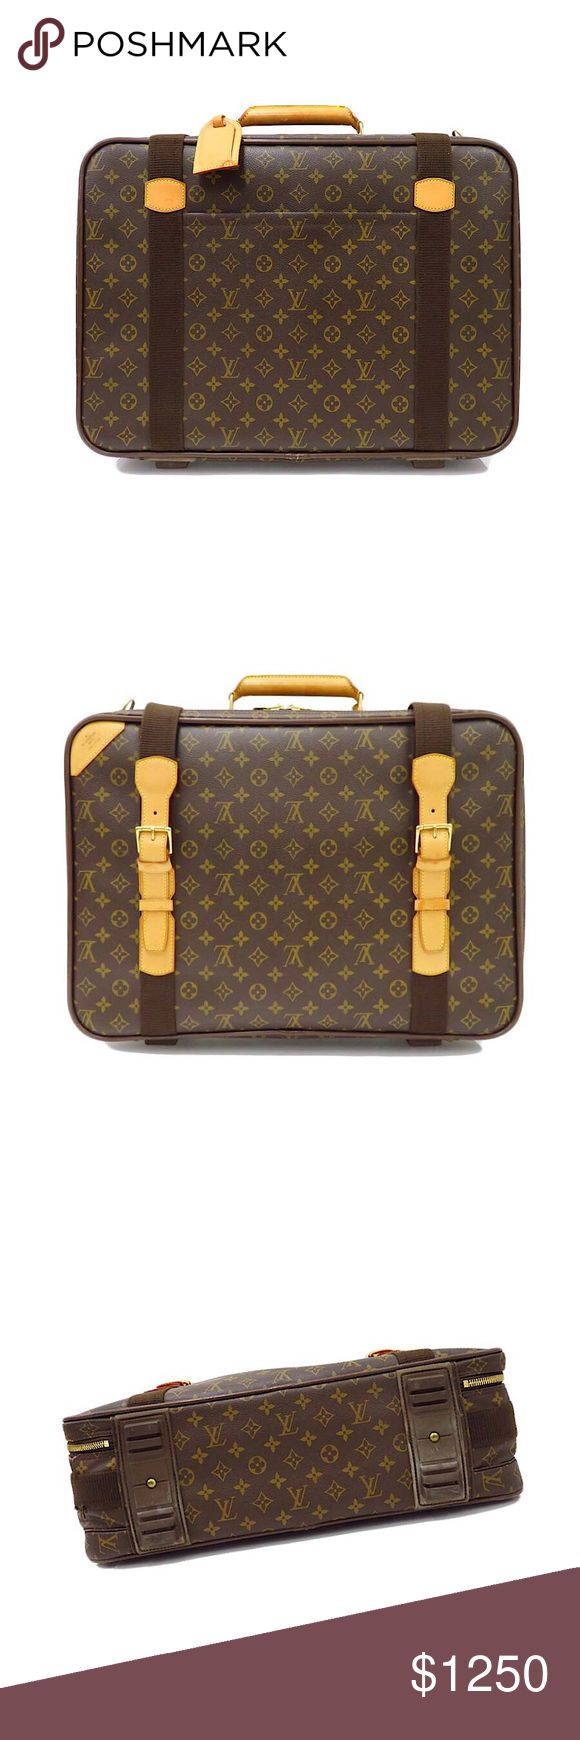 Authentic Vuitton Satellite 53 Luggage/Travel Bag Authentic Louis Vuitton Monogram Satellite 53 Luggage Bag  Includes Shoulder Strap, Padlock, Keys Date Code: MB1002 Made in France  Monogram Canvas, Leather Trim & Handle, Gold-Tone Hardware  *Light use on Exterior. No serious flaws. Louis Vuitton Bags Travel Bags